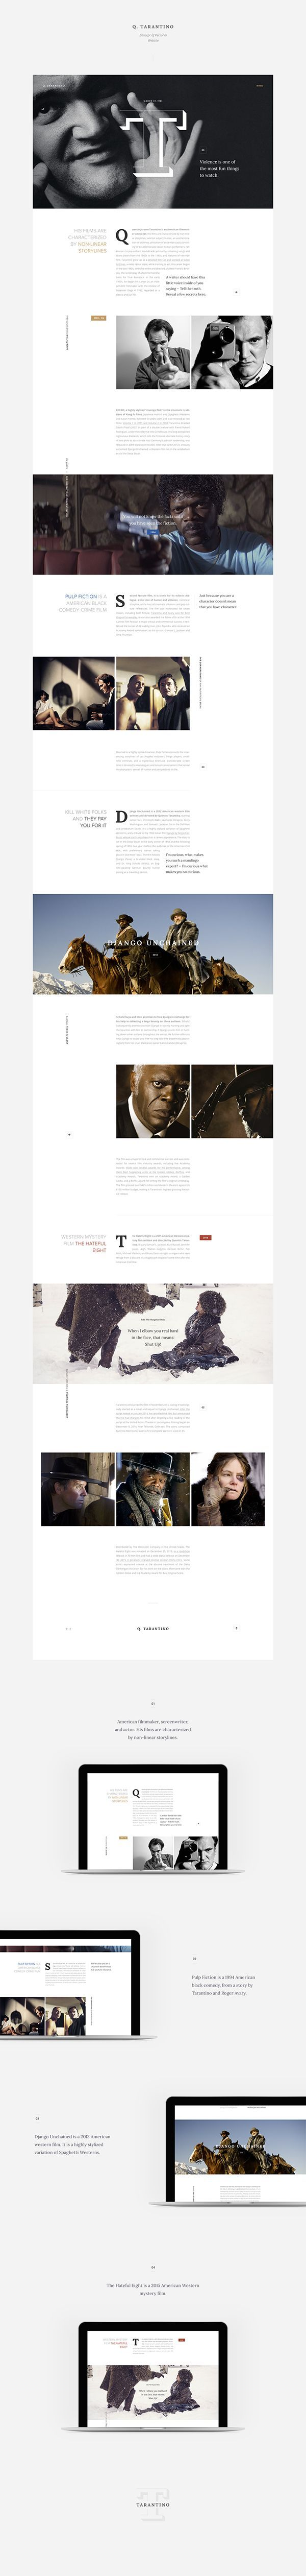 Beautiful Editorial Design for the Web: